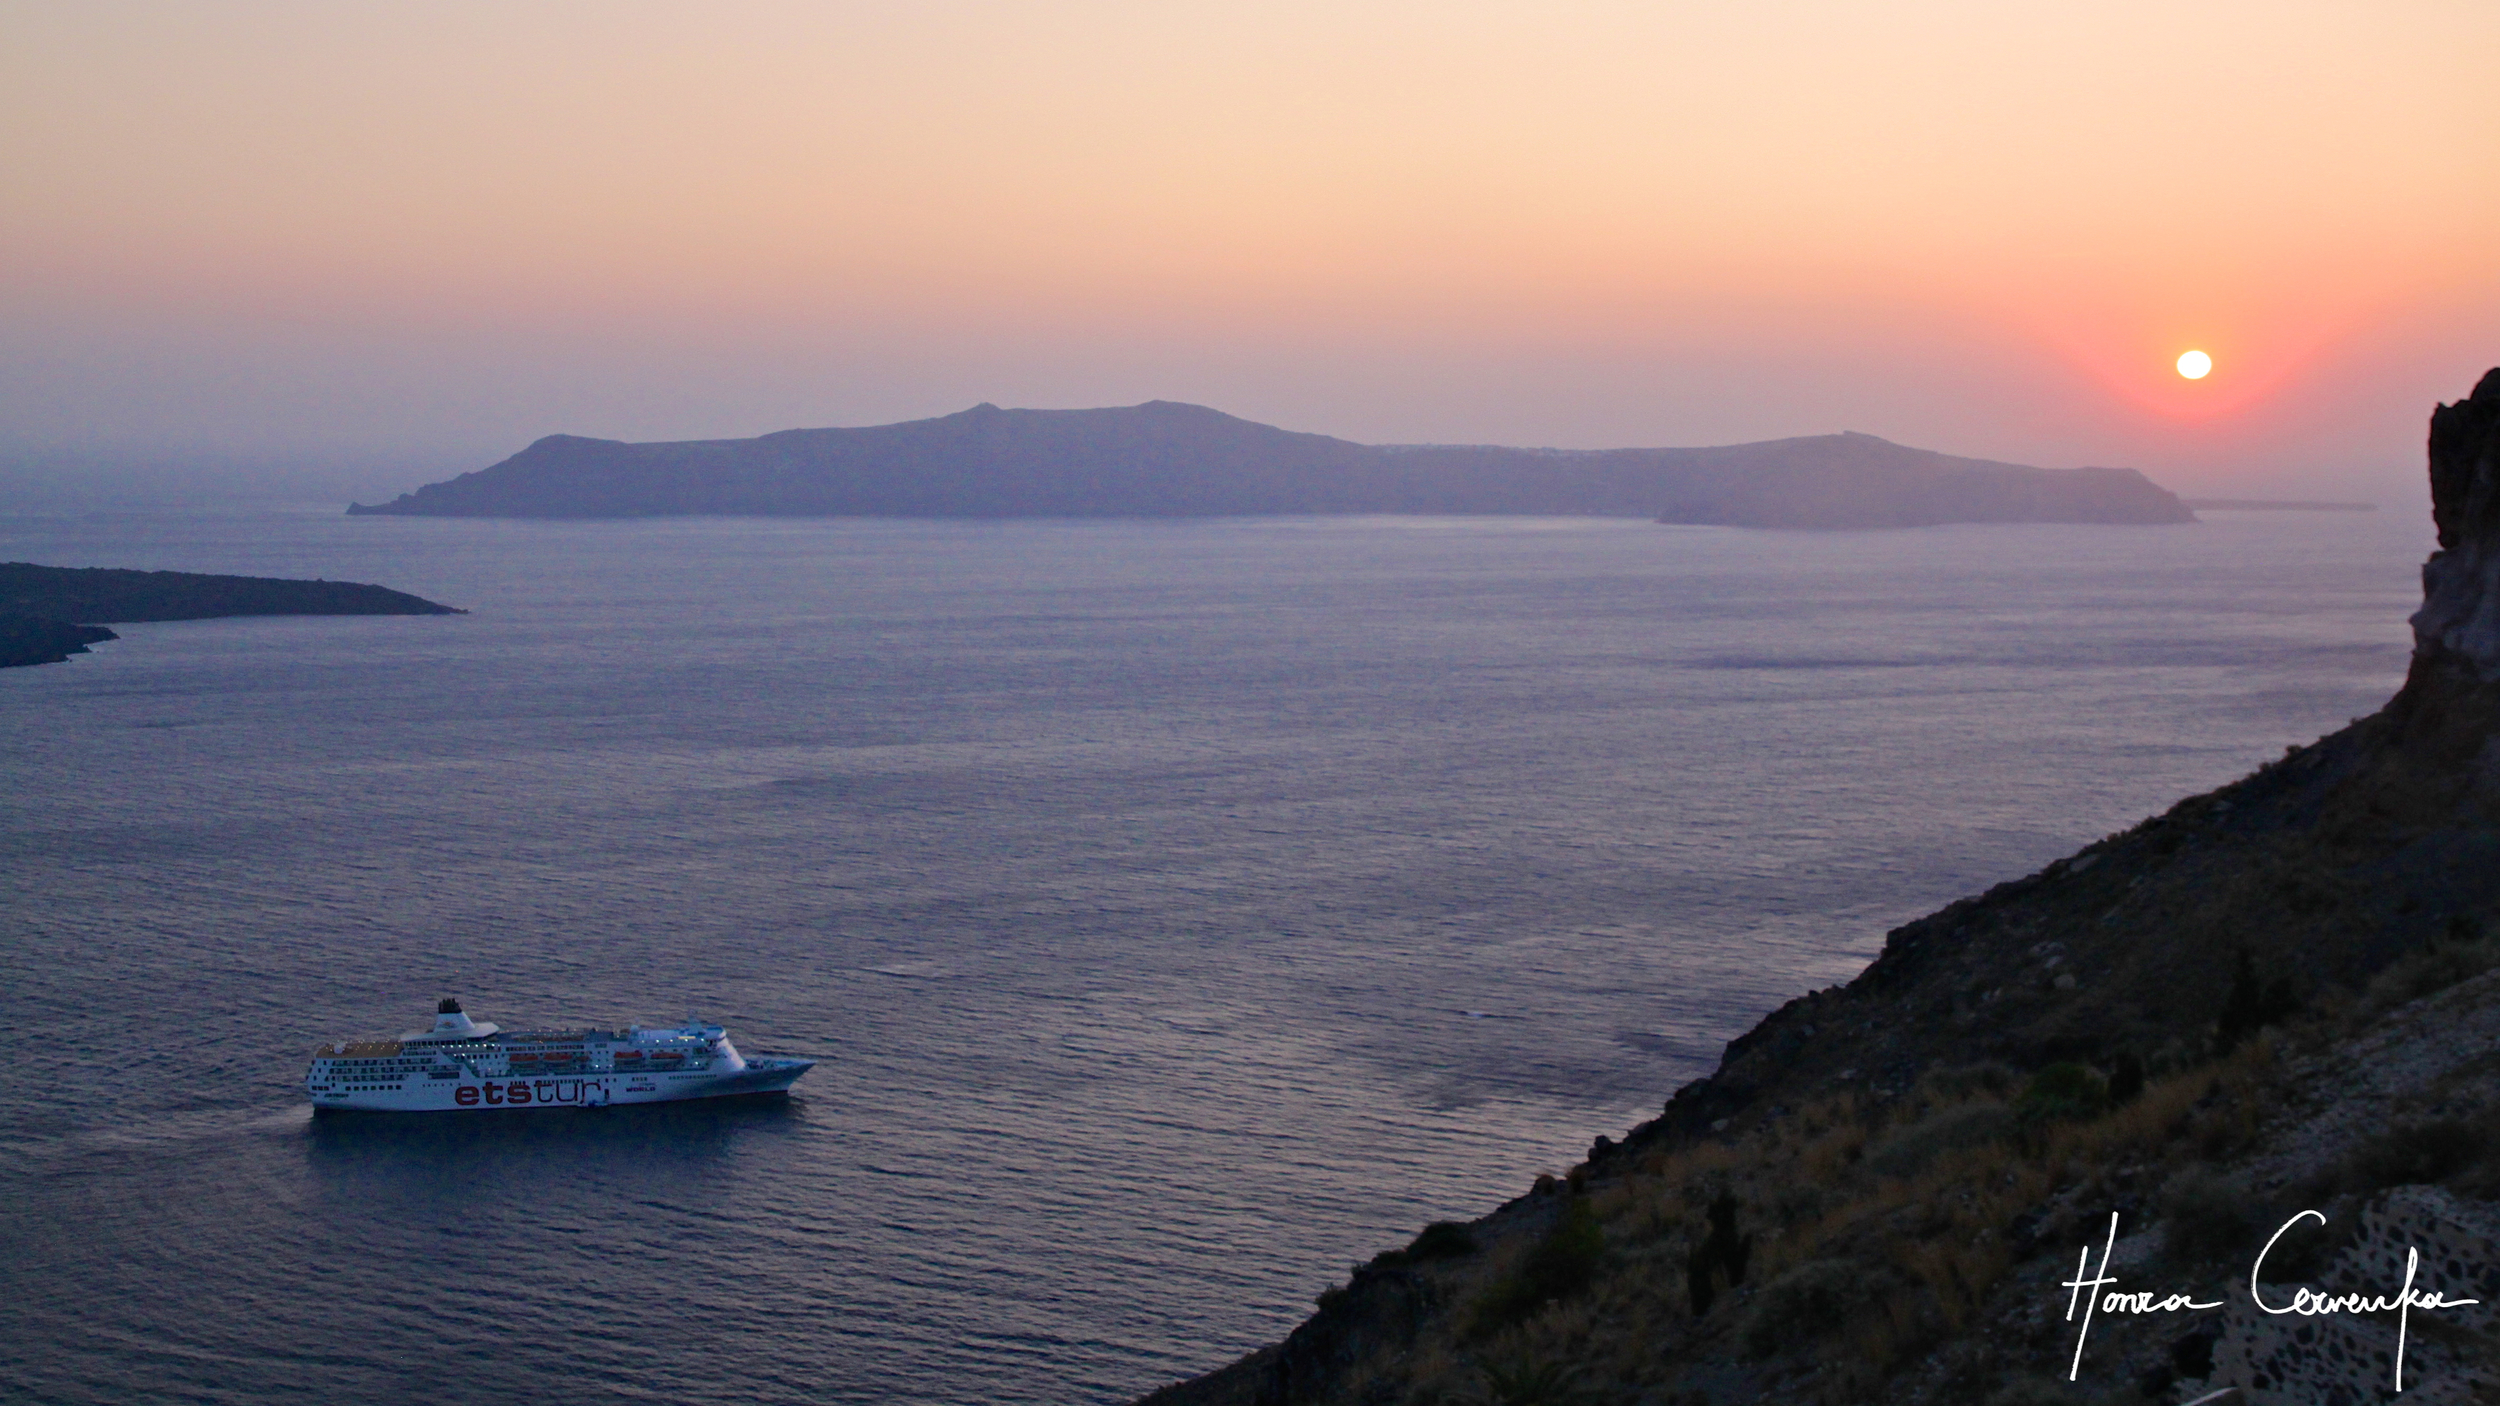 And now sunset and the caldera--more about the caldera next week!